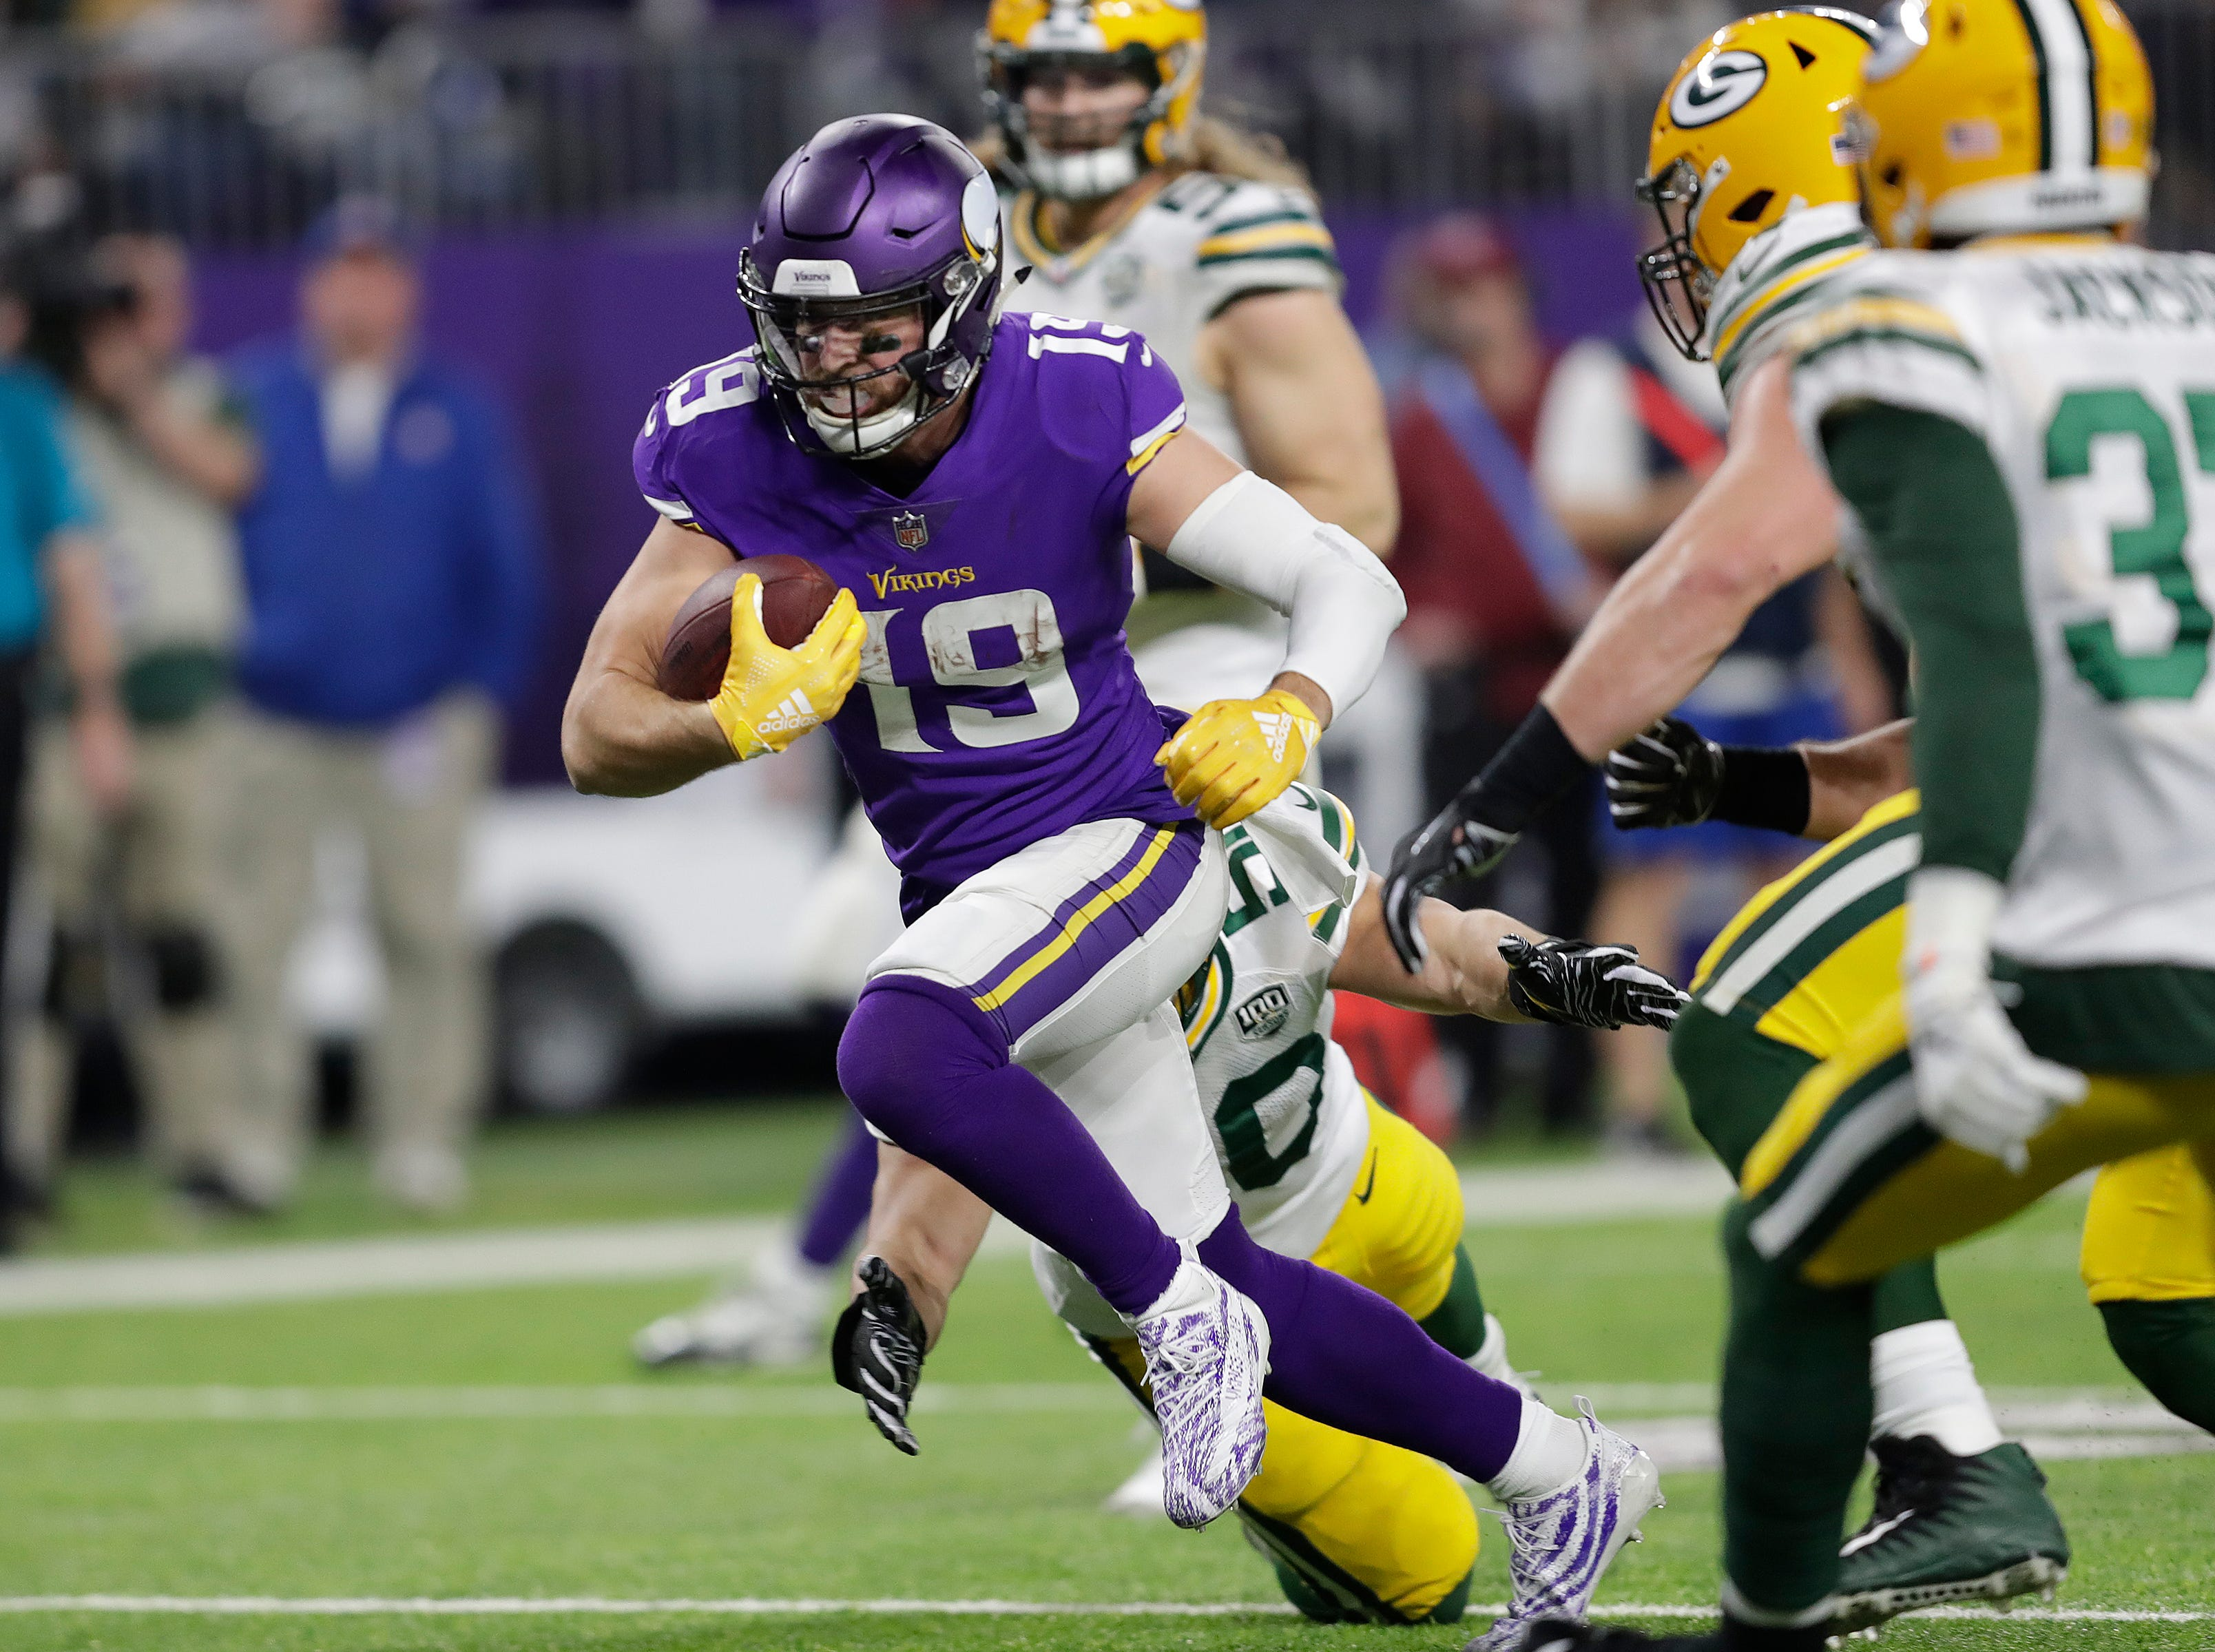 Minnesota Vikings wide receiver Adam Thielen (19) scores a touchdown in the thrid quarter against the Green Bay Packers during their football game Sunday, November 25, 2018, at U.S. Bank Stadium in Minneapolis, Minn. 